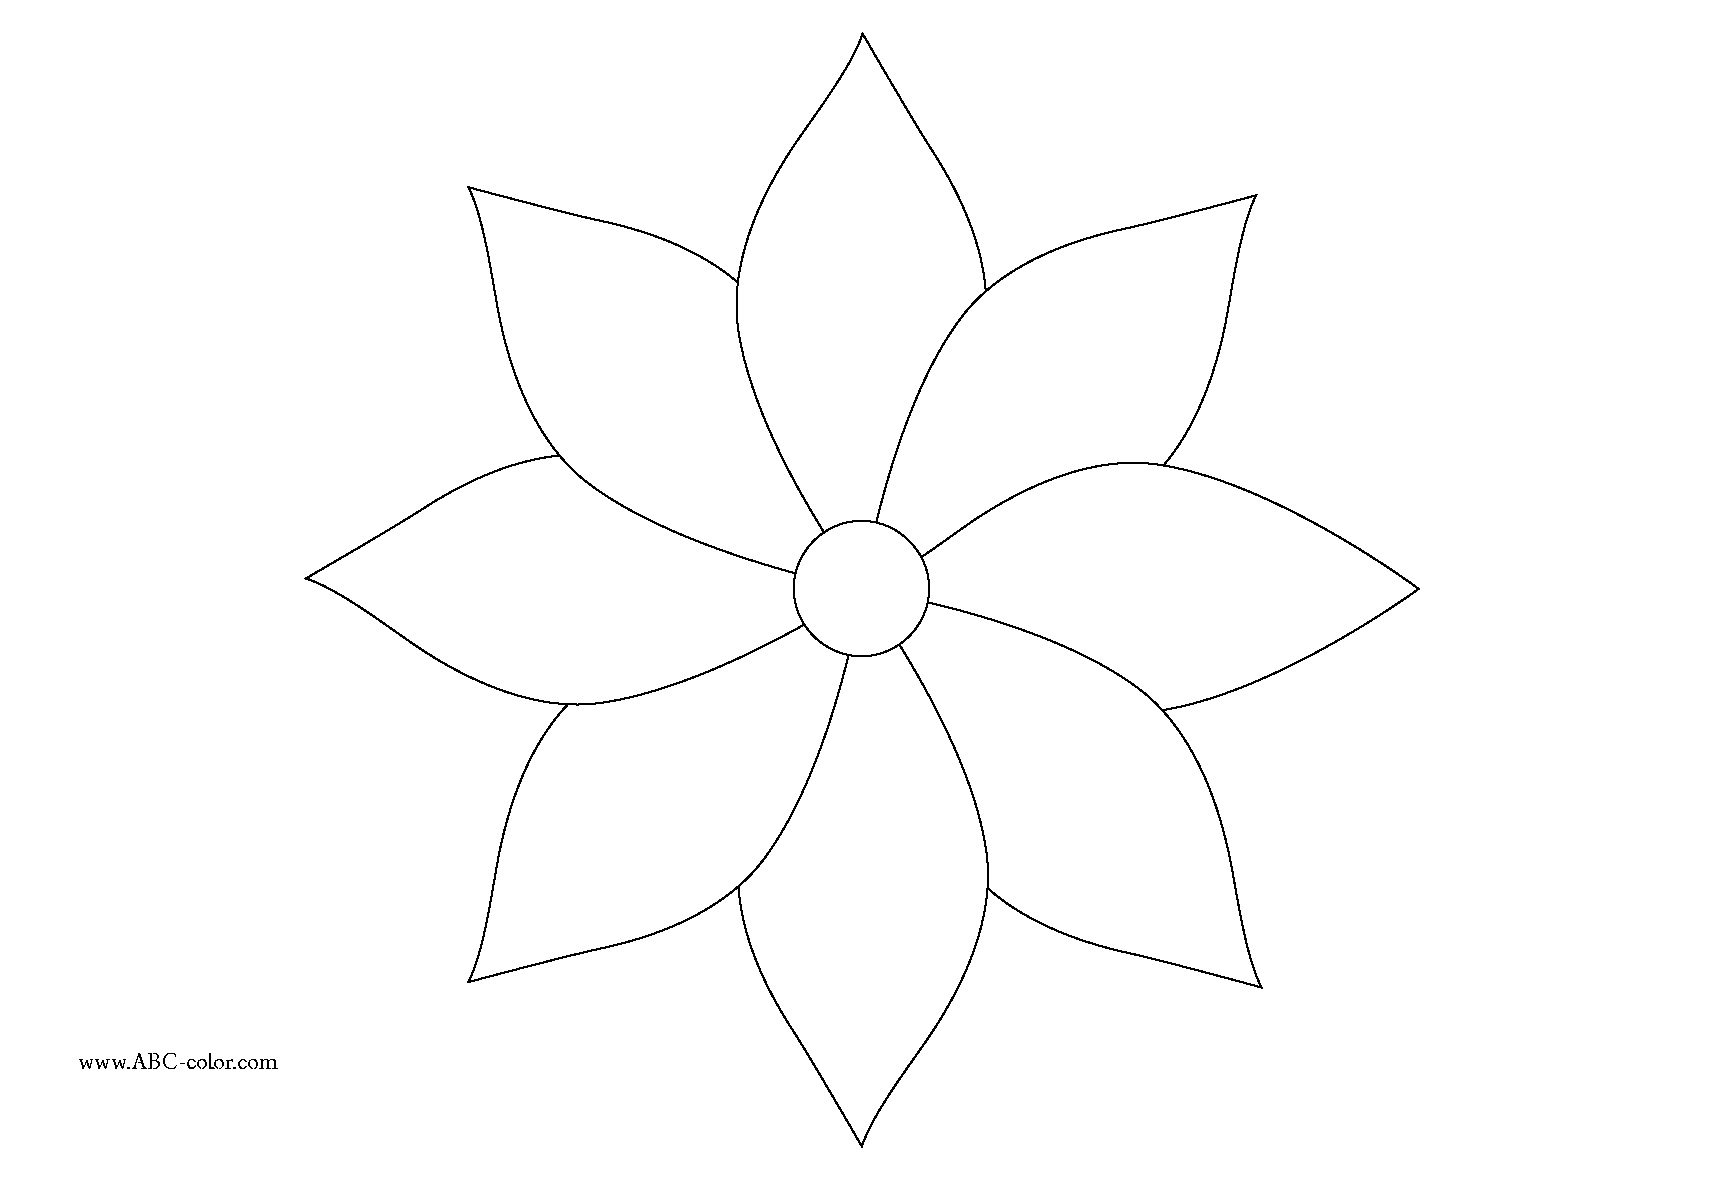 C:\Users\User\Desktop\Новая папка (5)\blossom-bitmap-coloring.png